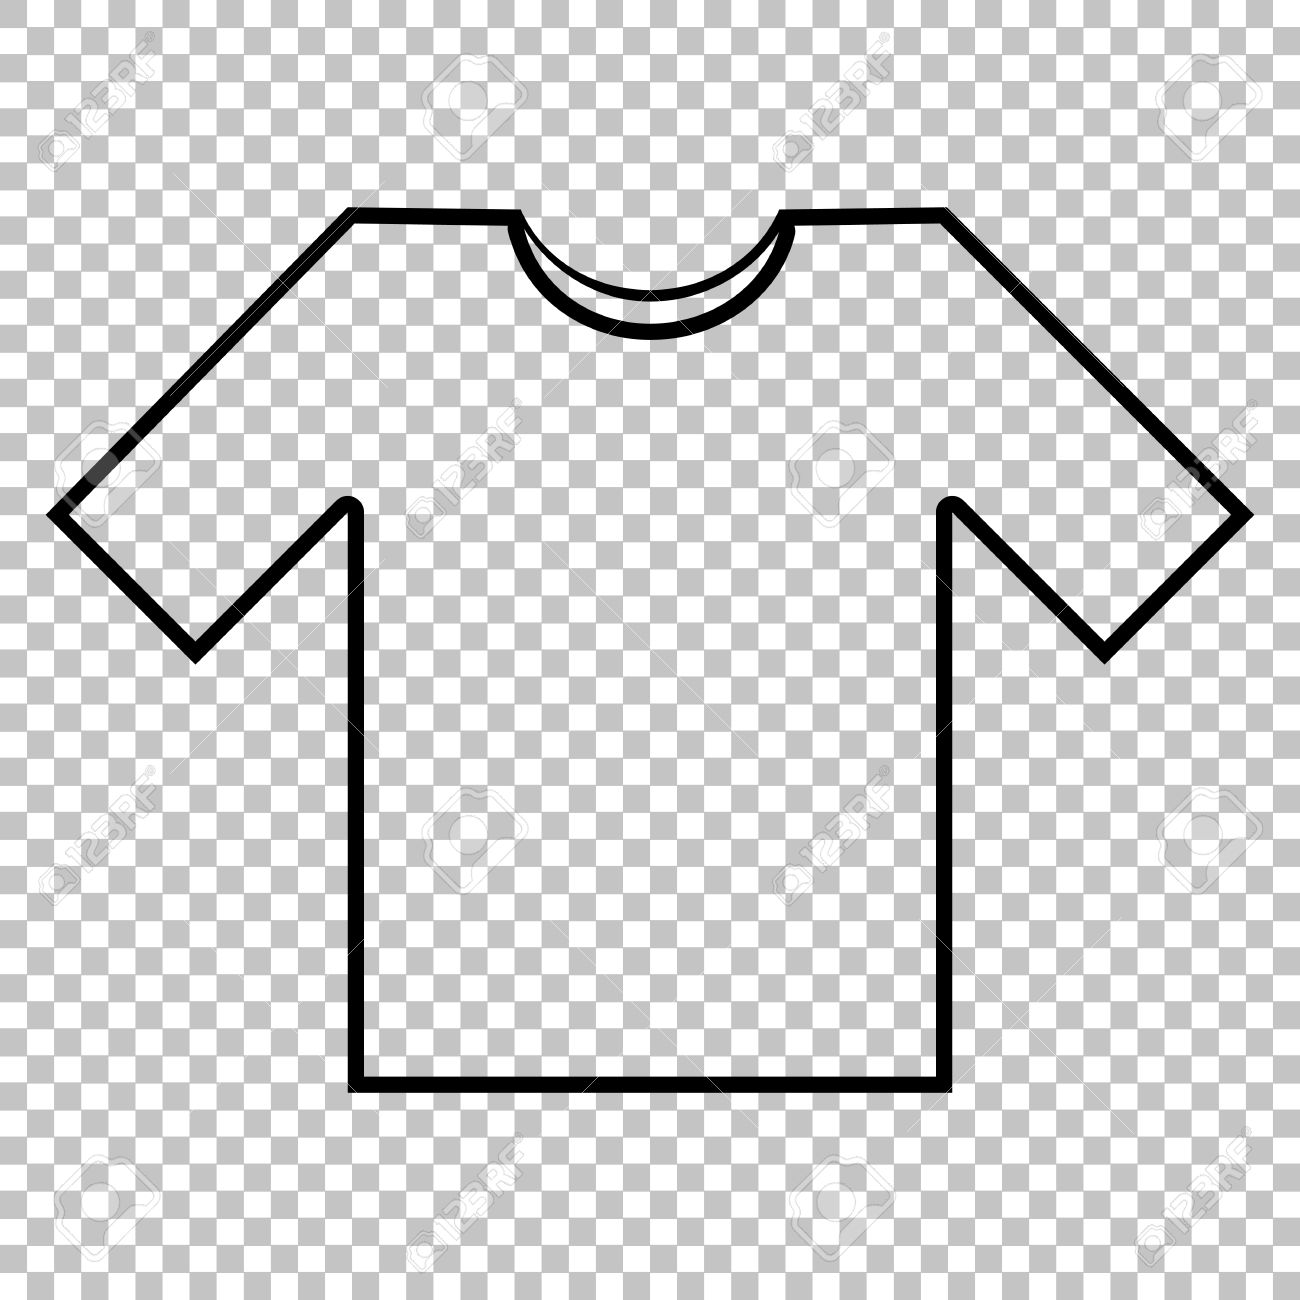 Black t shirt vector photoshop - T Shirt Line Vector Icon On Transparent Background Stock Vector 53564282